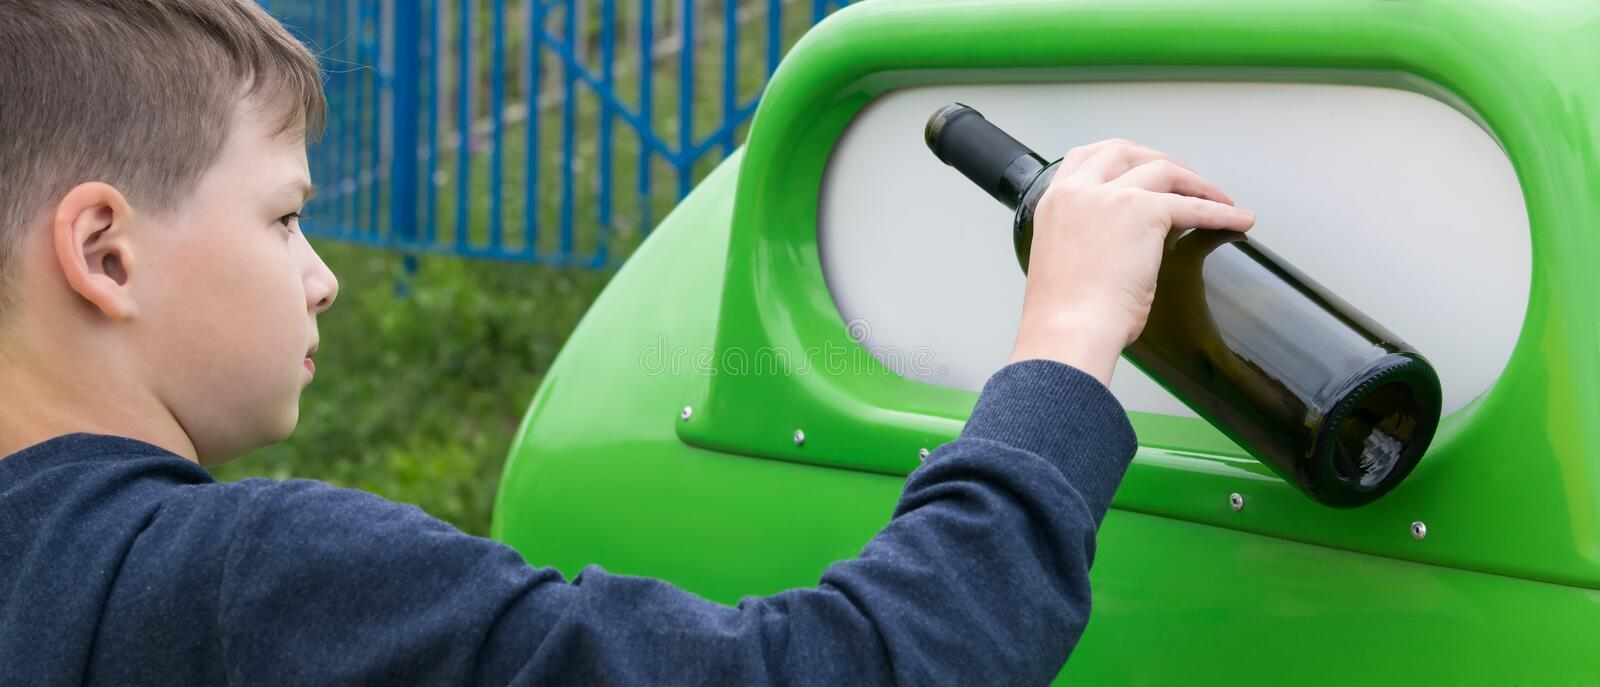 A boy throws a bottle from under the wine into the trash tank, rear view royalty free stock photography